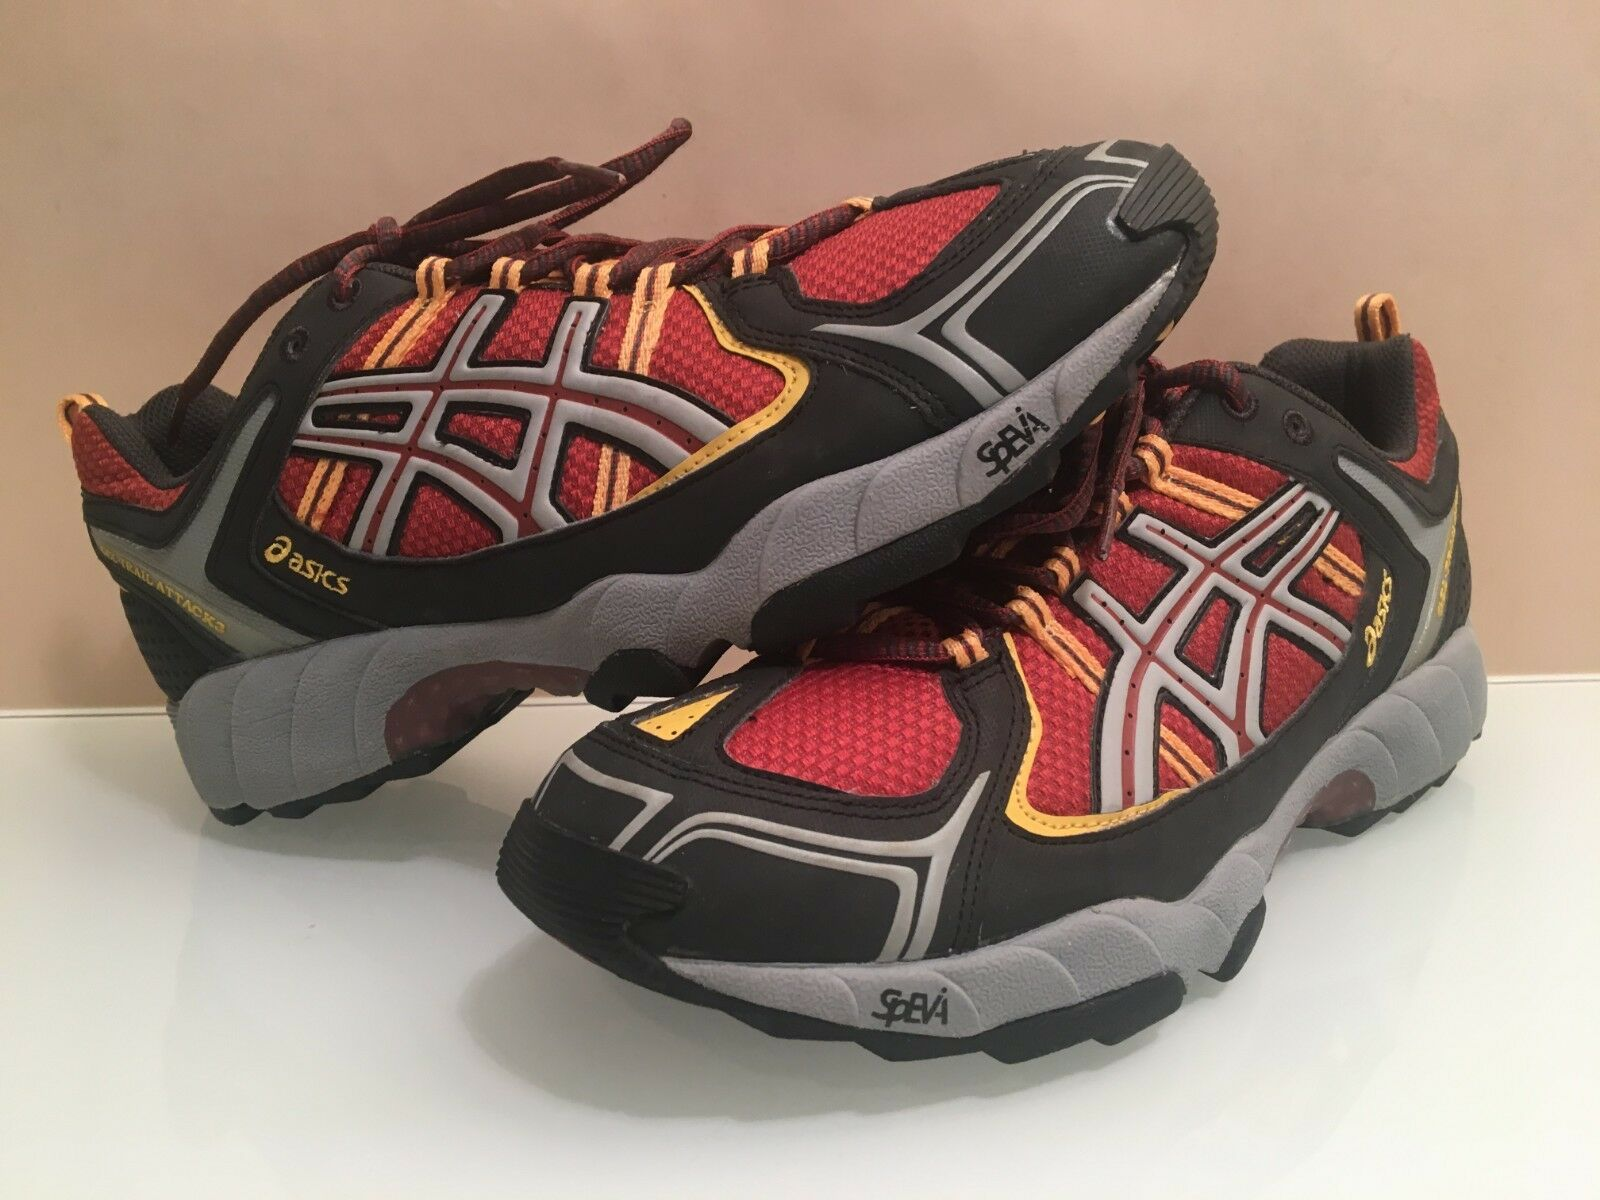 MENS ASICS GEL-TRAIL ATTACK 3 SHOES,SLIGHTLY USED,CLEAN,SIZE 10 U.S